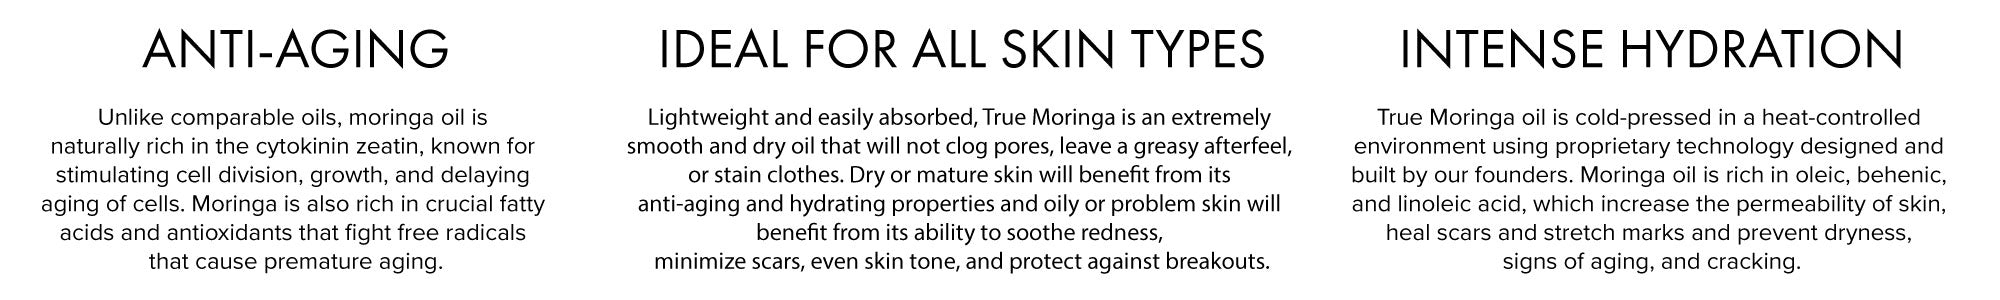 true moringa oil products clean beauty